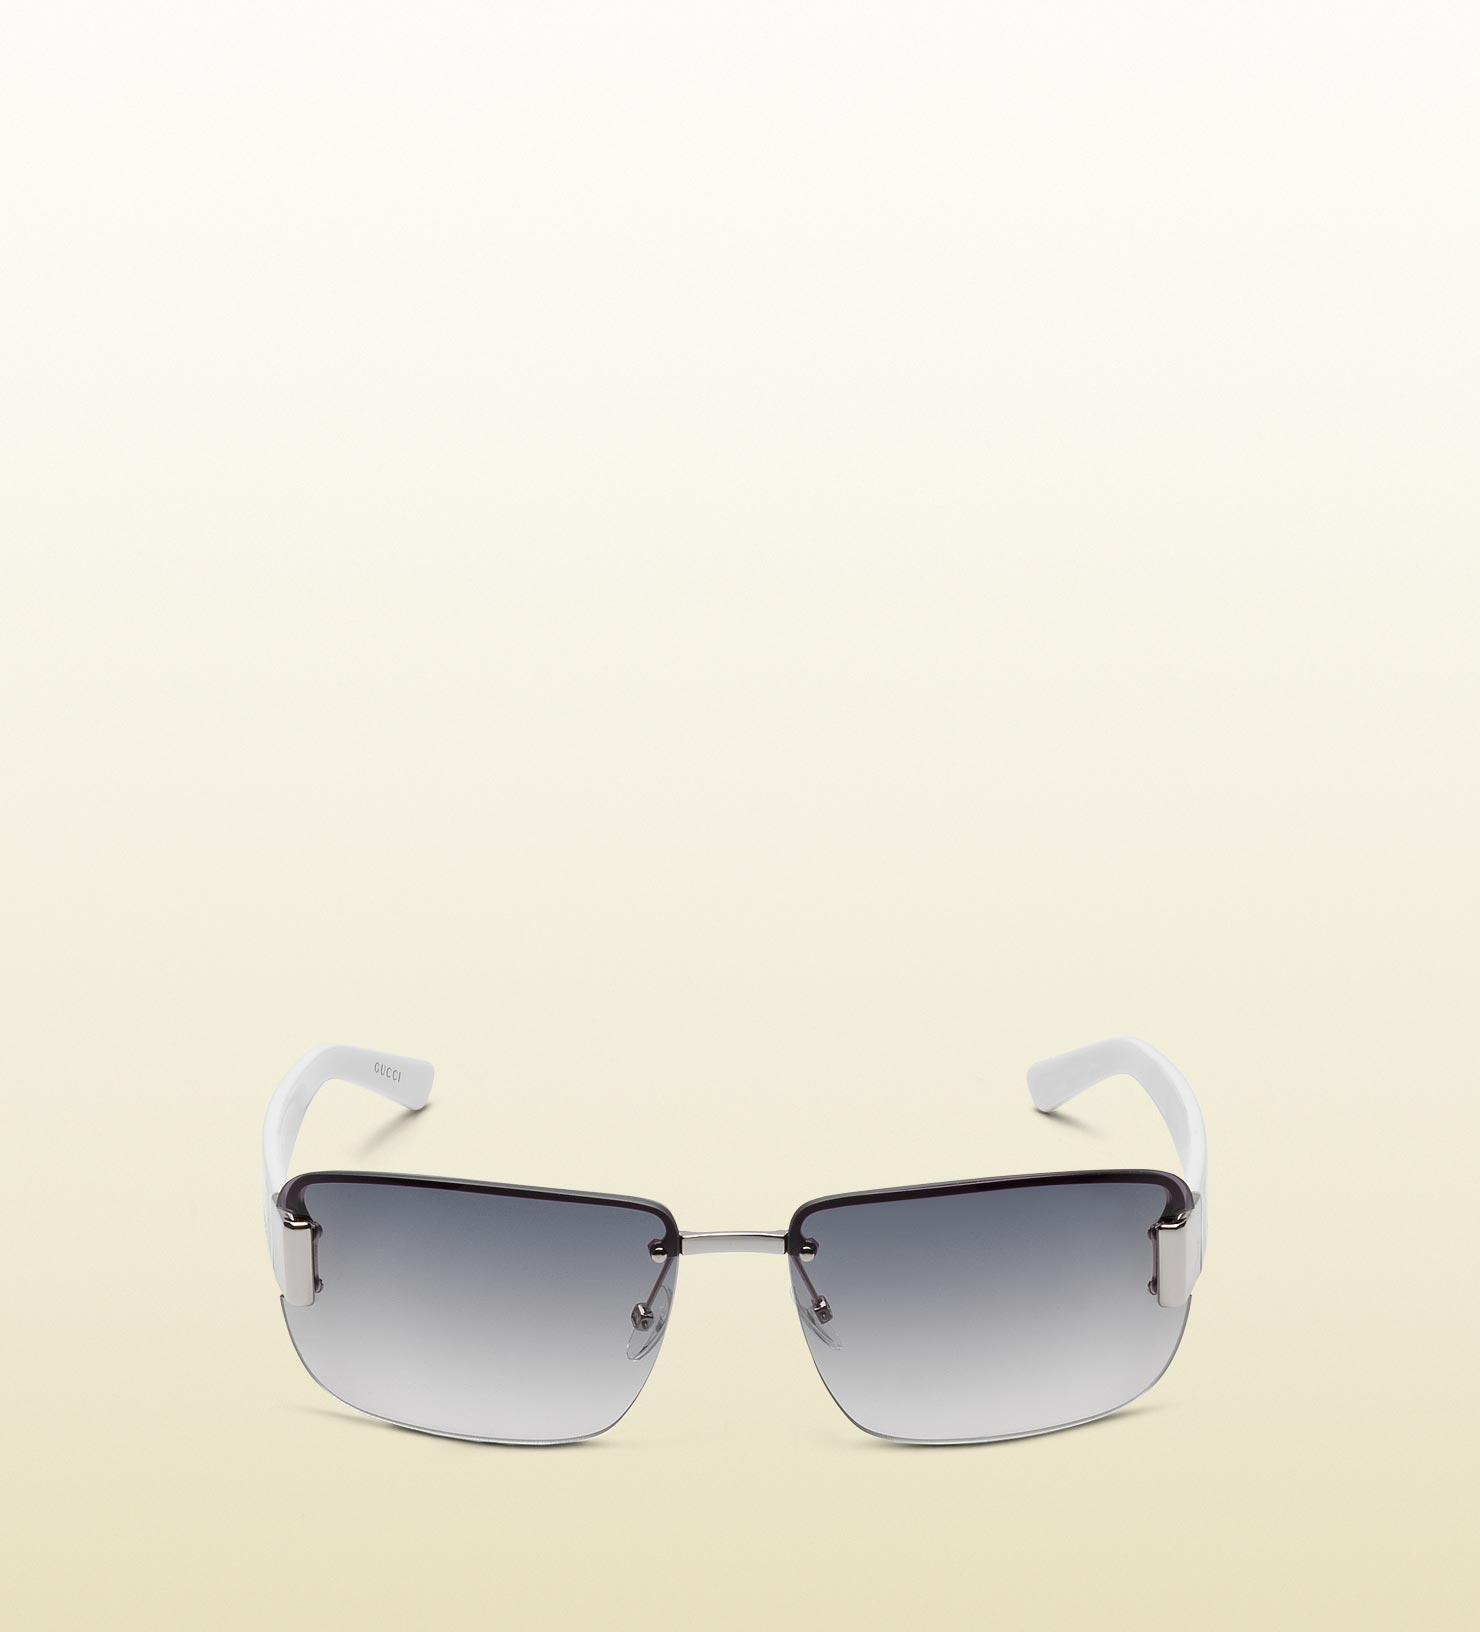 b2d8c3afdb7 Lyst - Gucci Medium Rimless Sunglasses With Logo And Signature Web ...